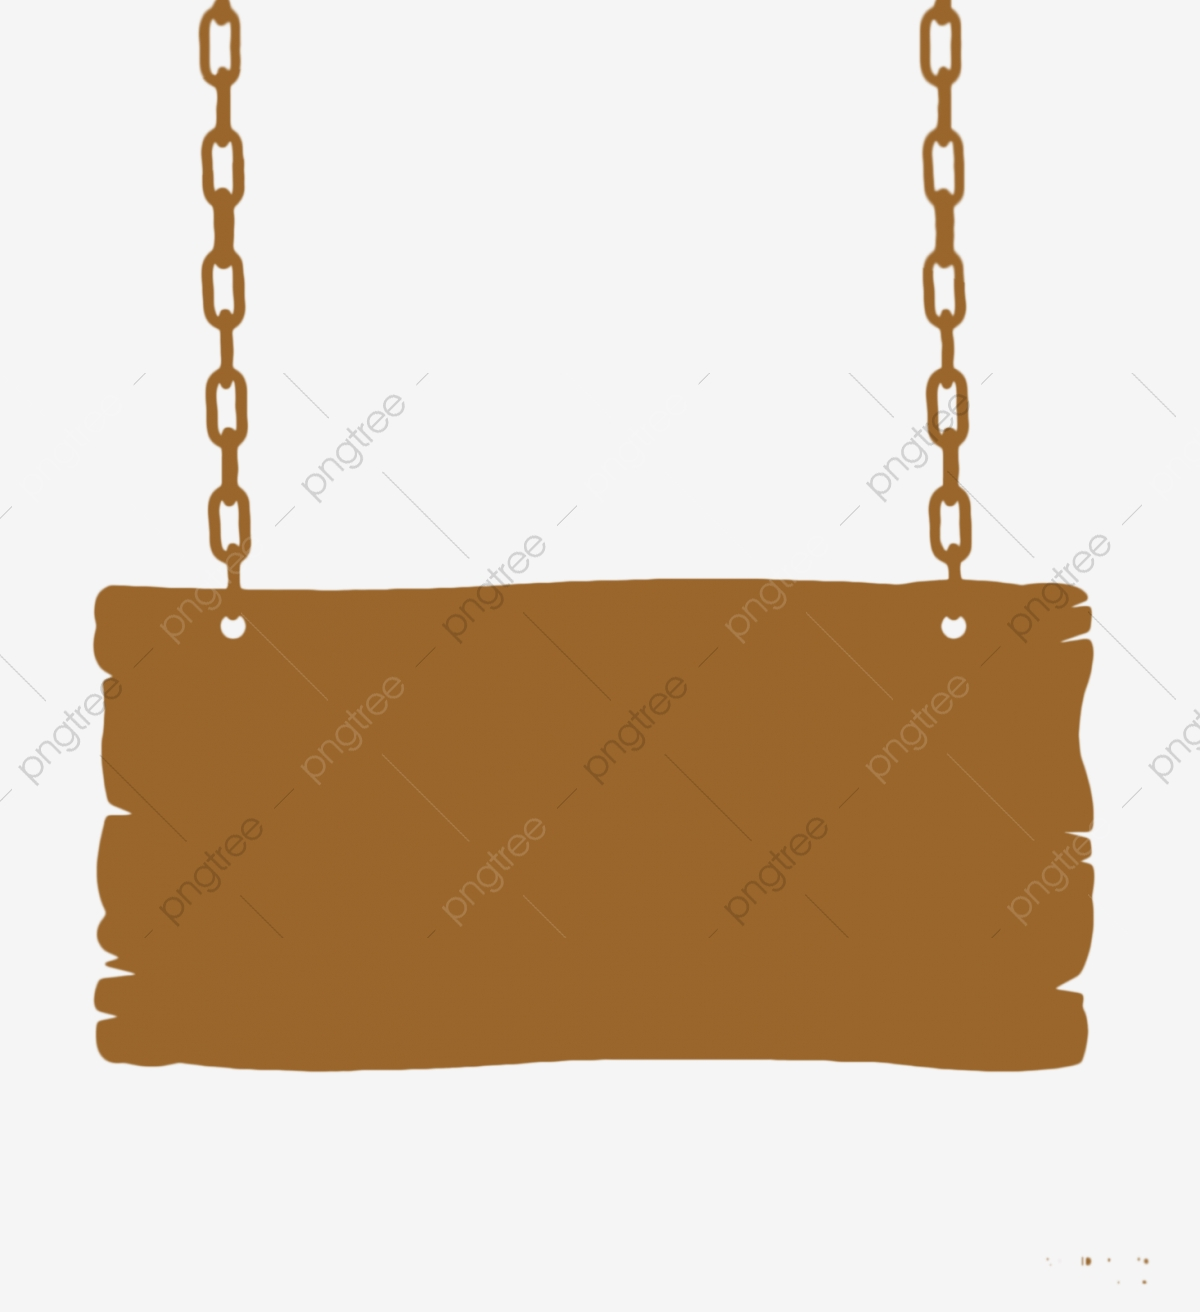 Hanging Indicator Board Signal, Wood, Wooden, Board PNG and Vector.